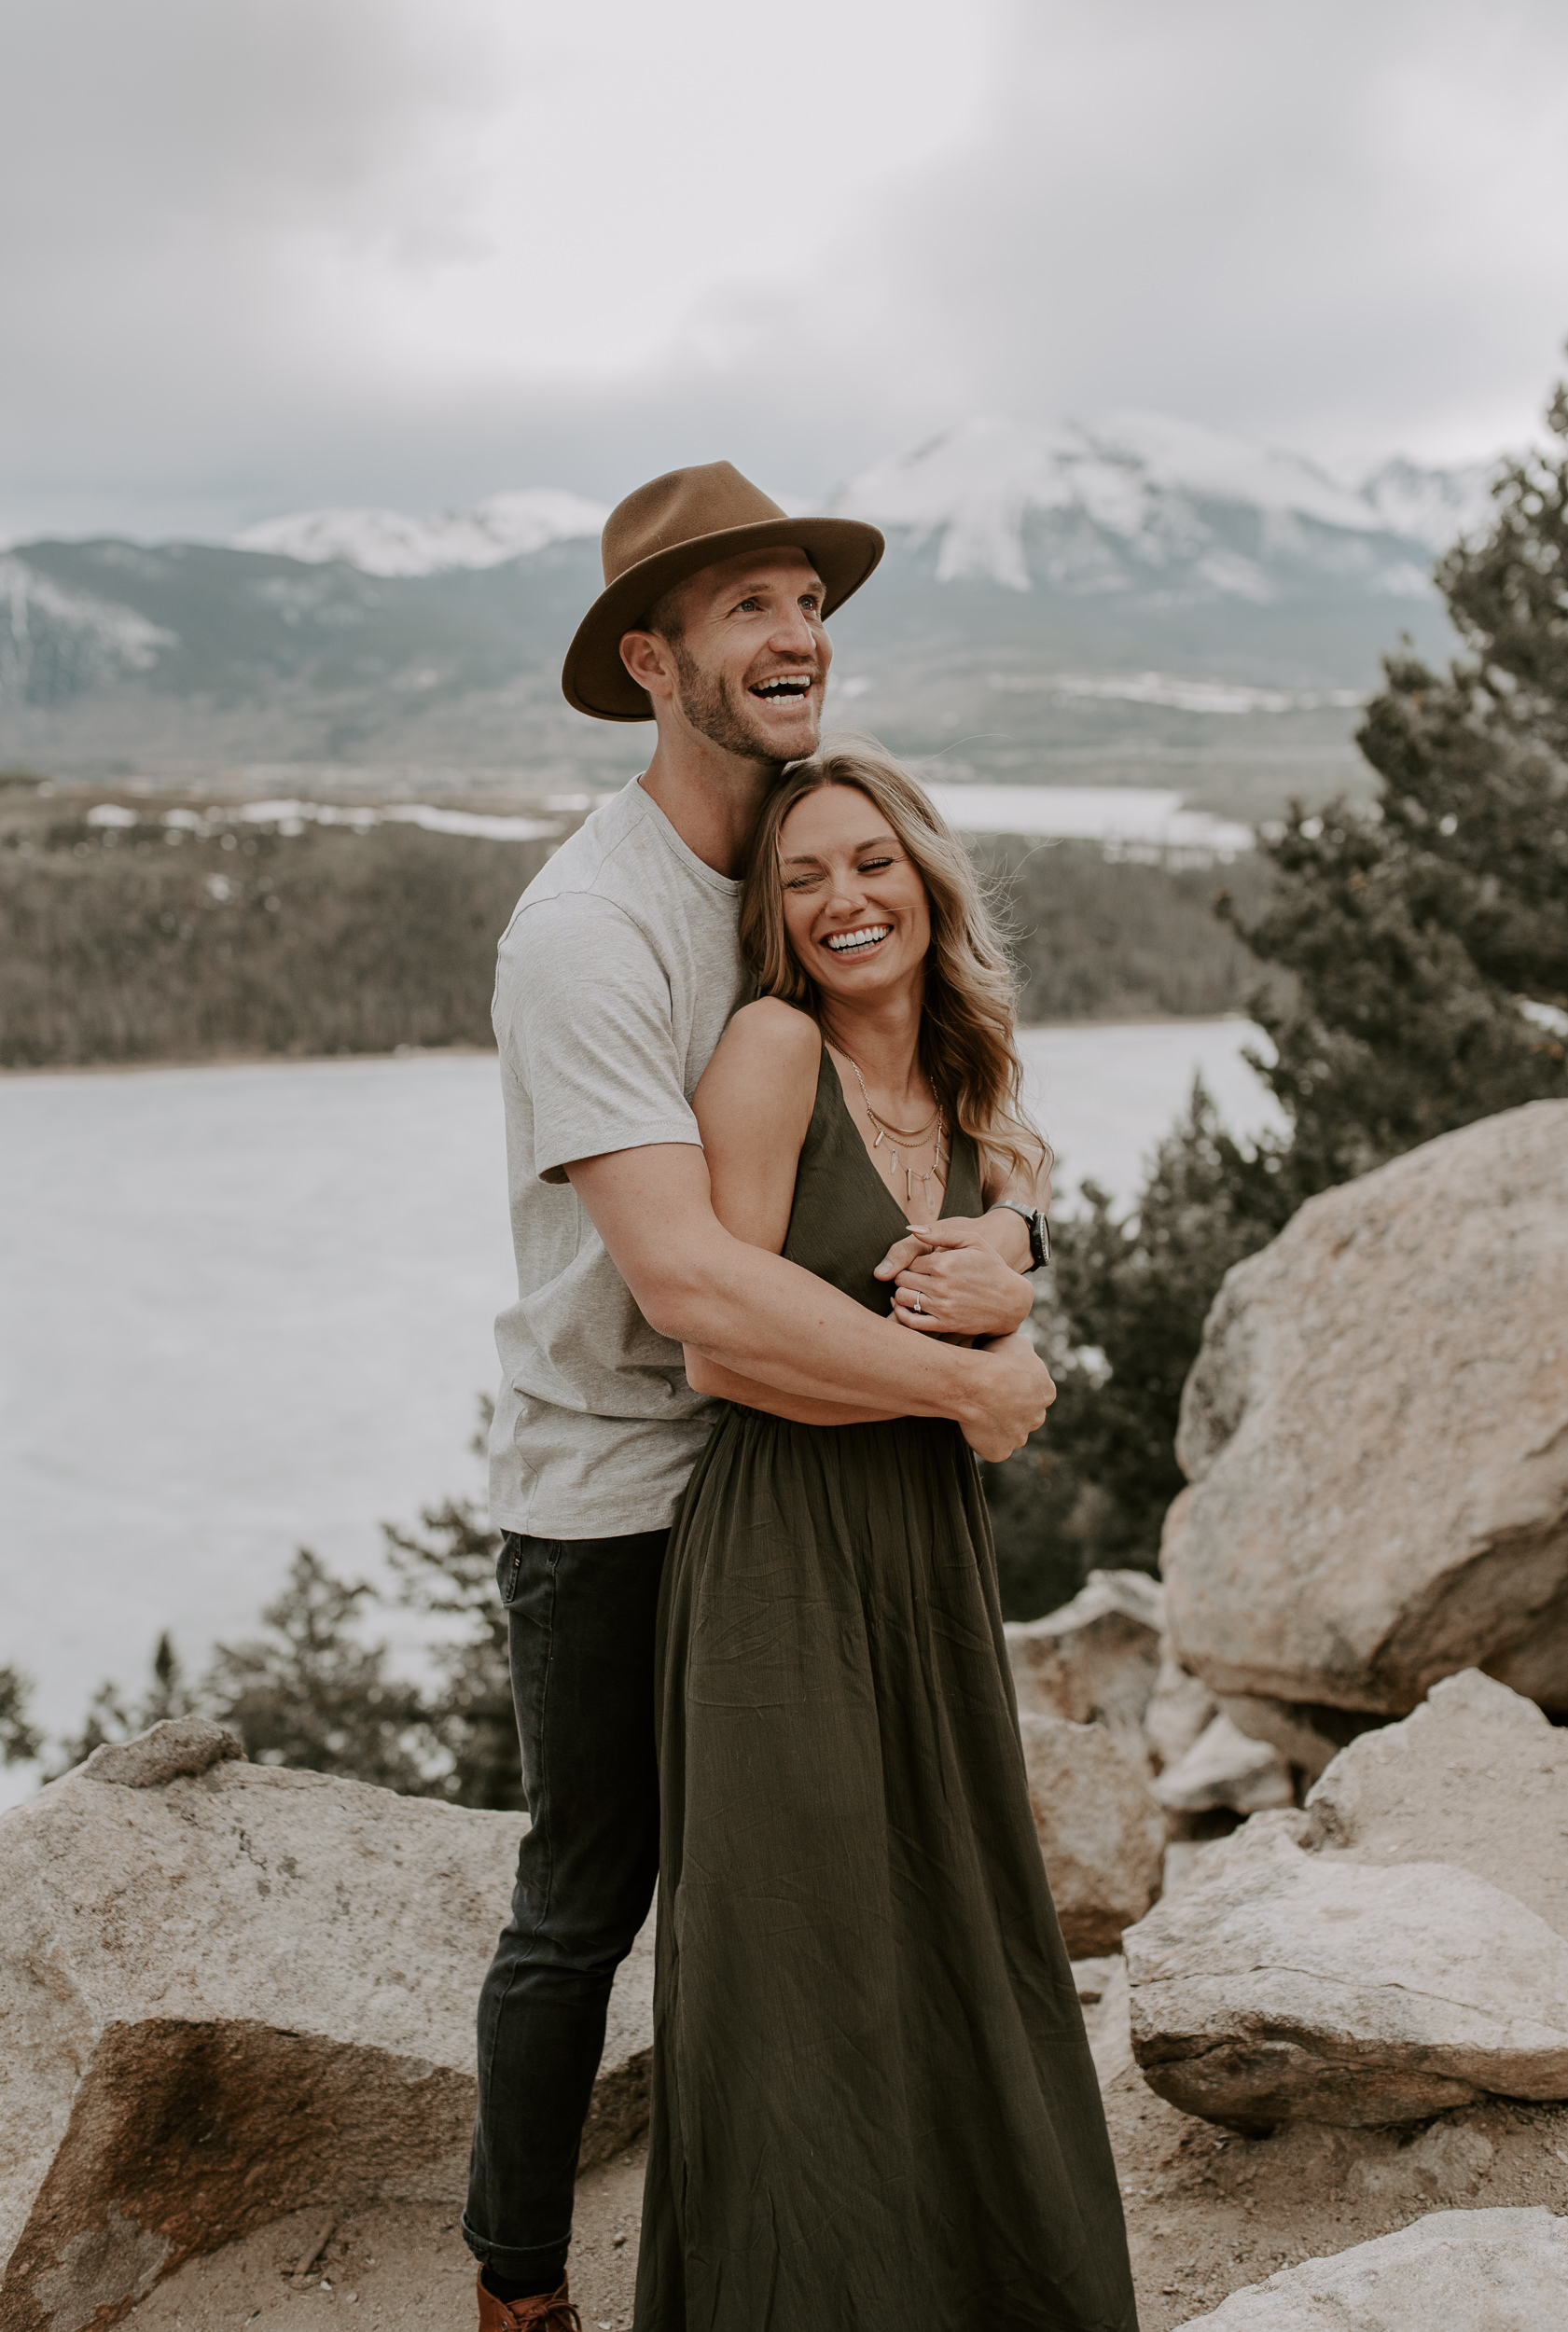 Breckenridge, Colorado engagement session at Sapphire Point. Colorado elopement and wedding photographer